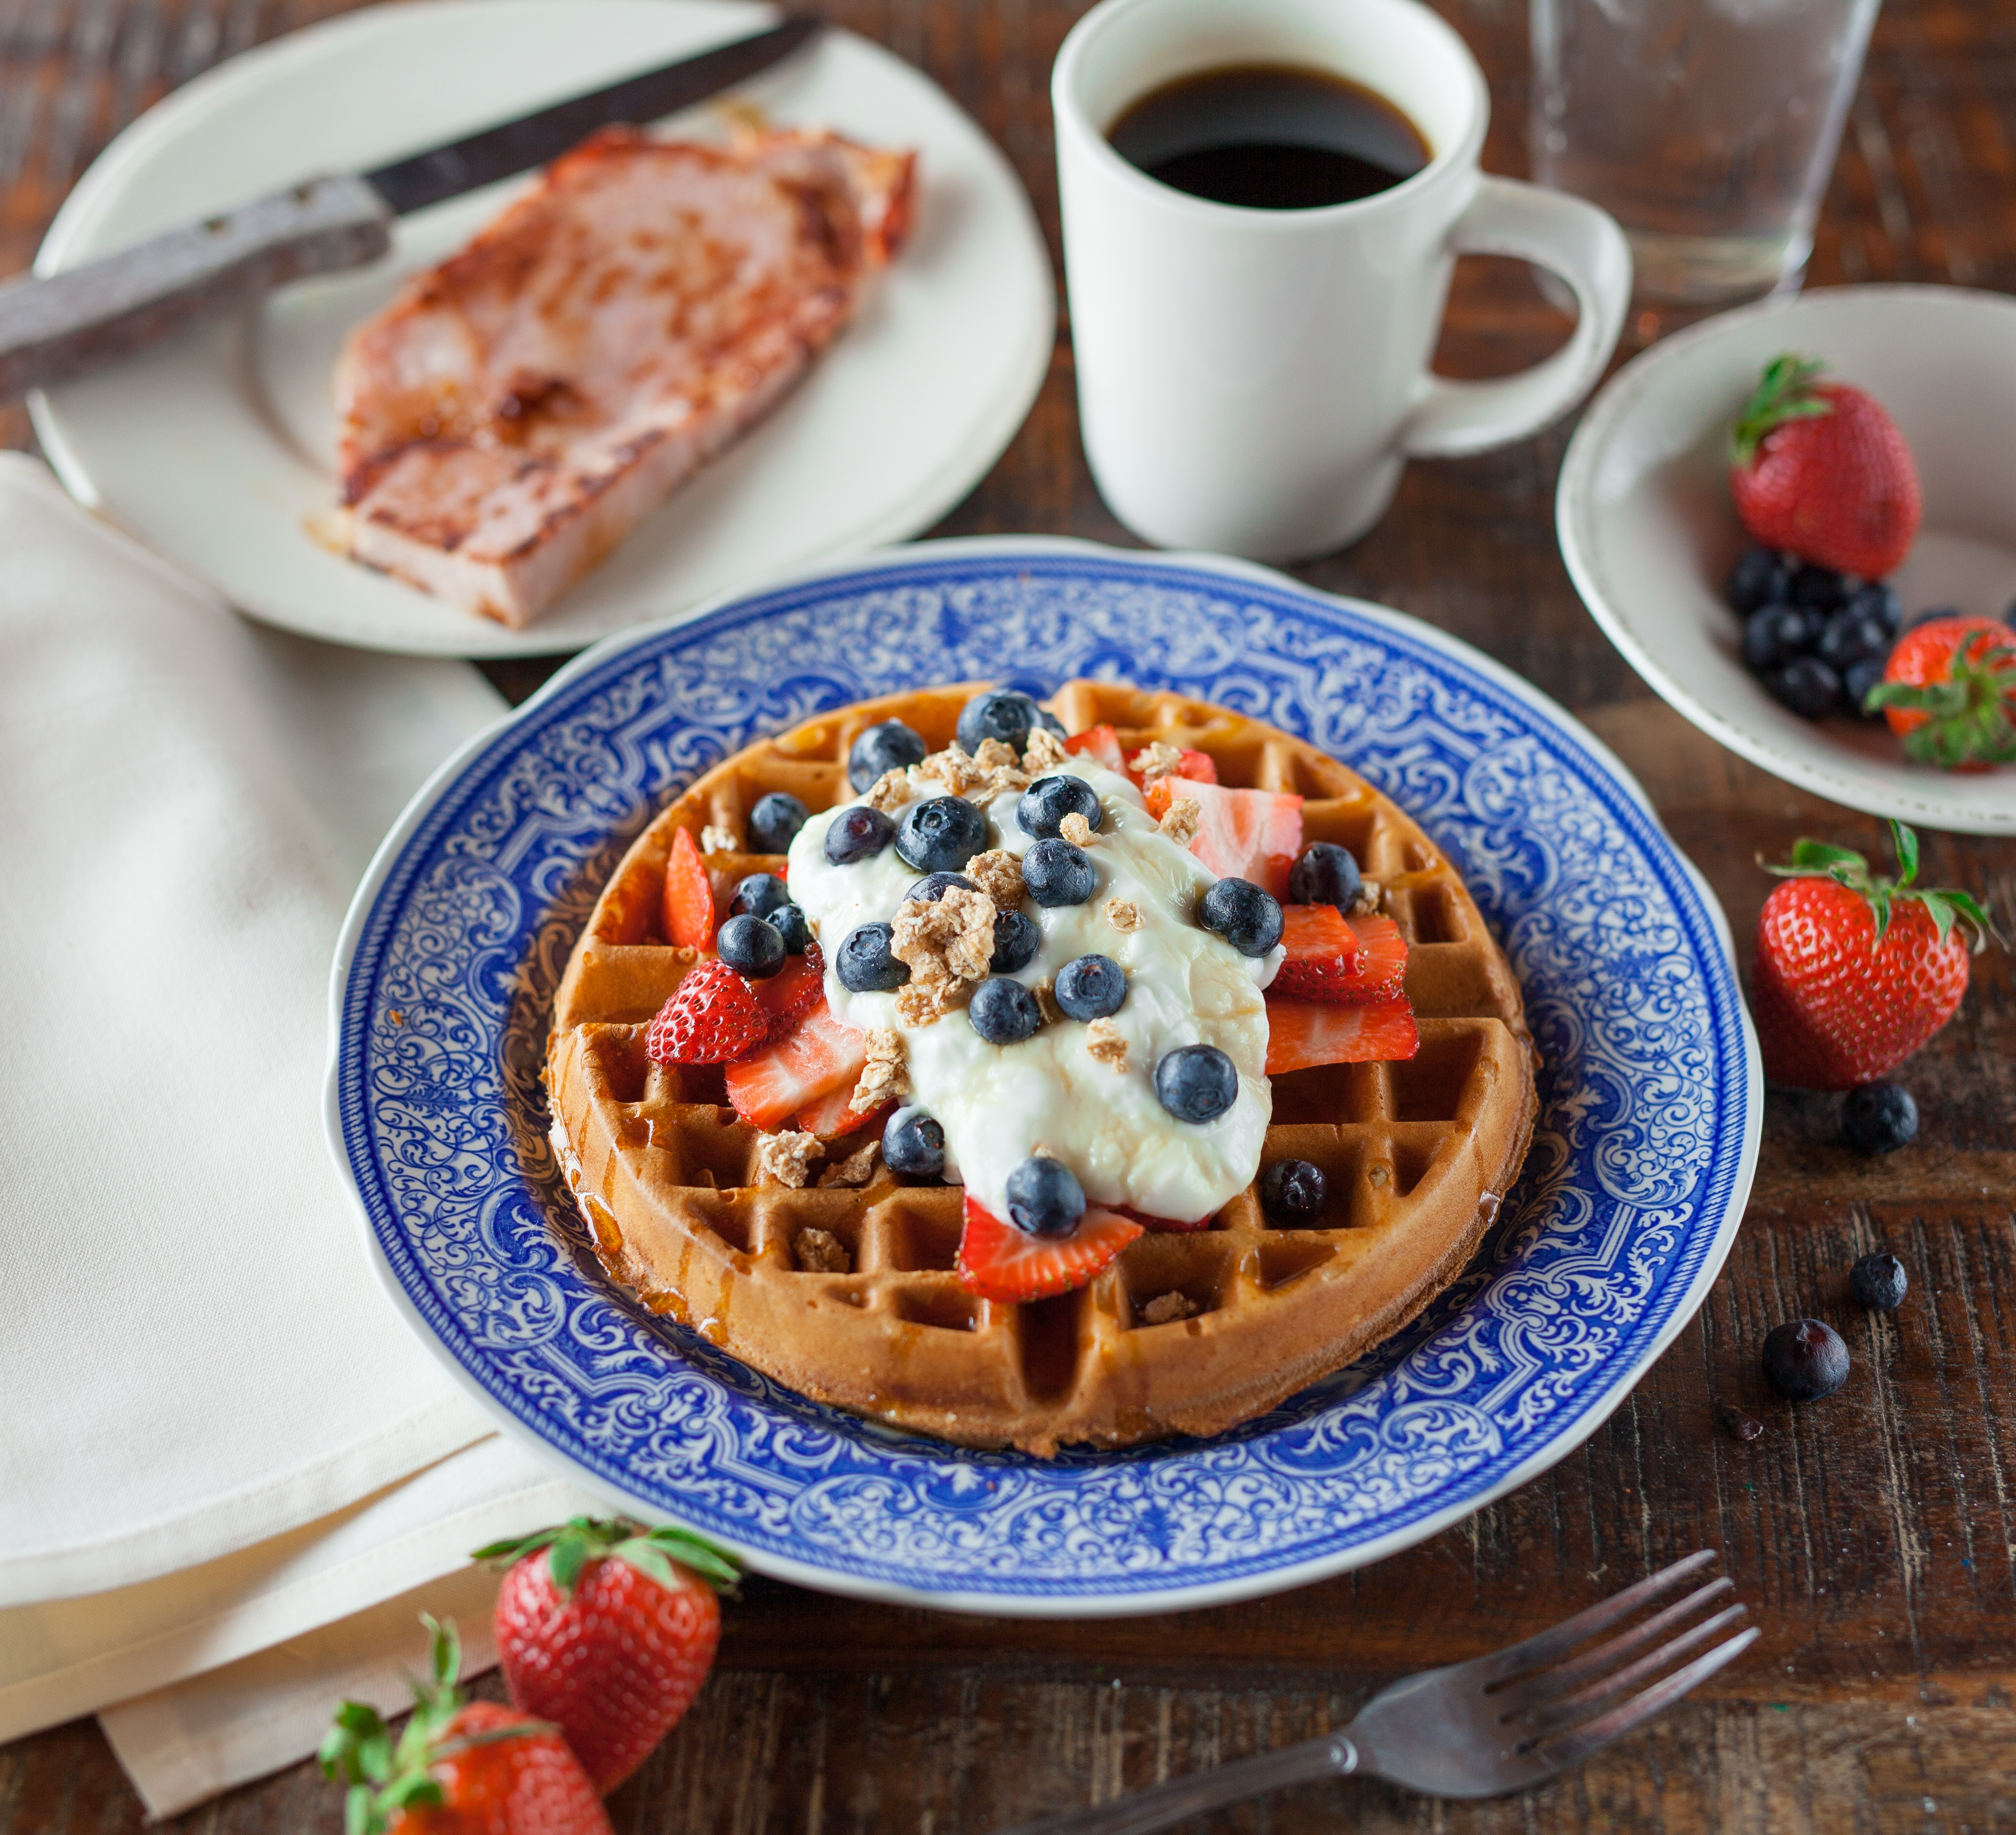 Round waffles with whipped cream, strawberries and blueberries next to a cup of coffee